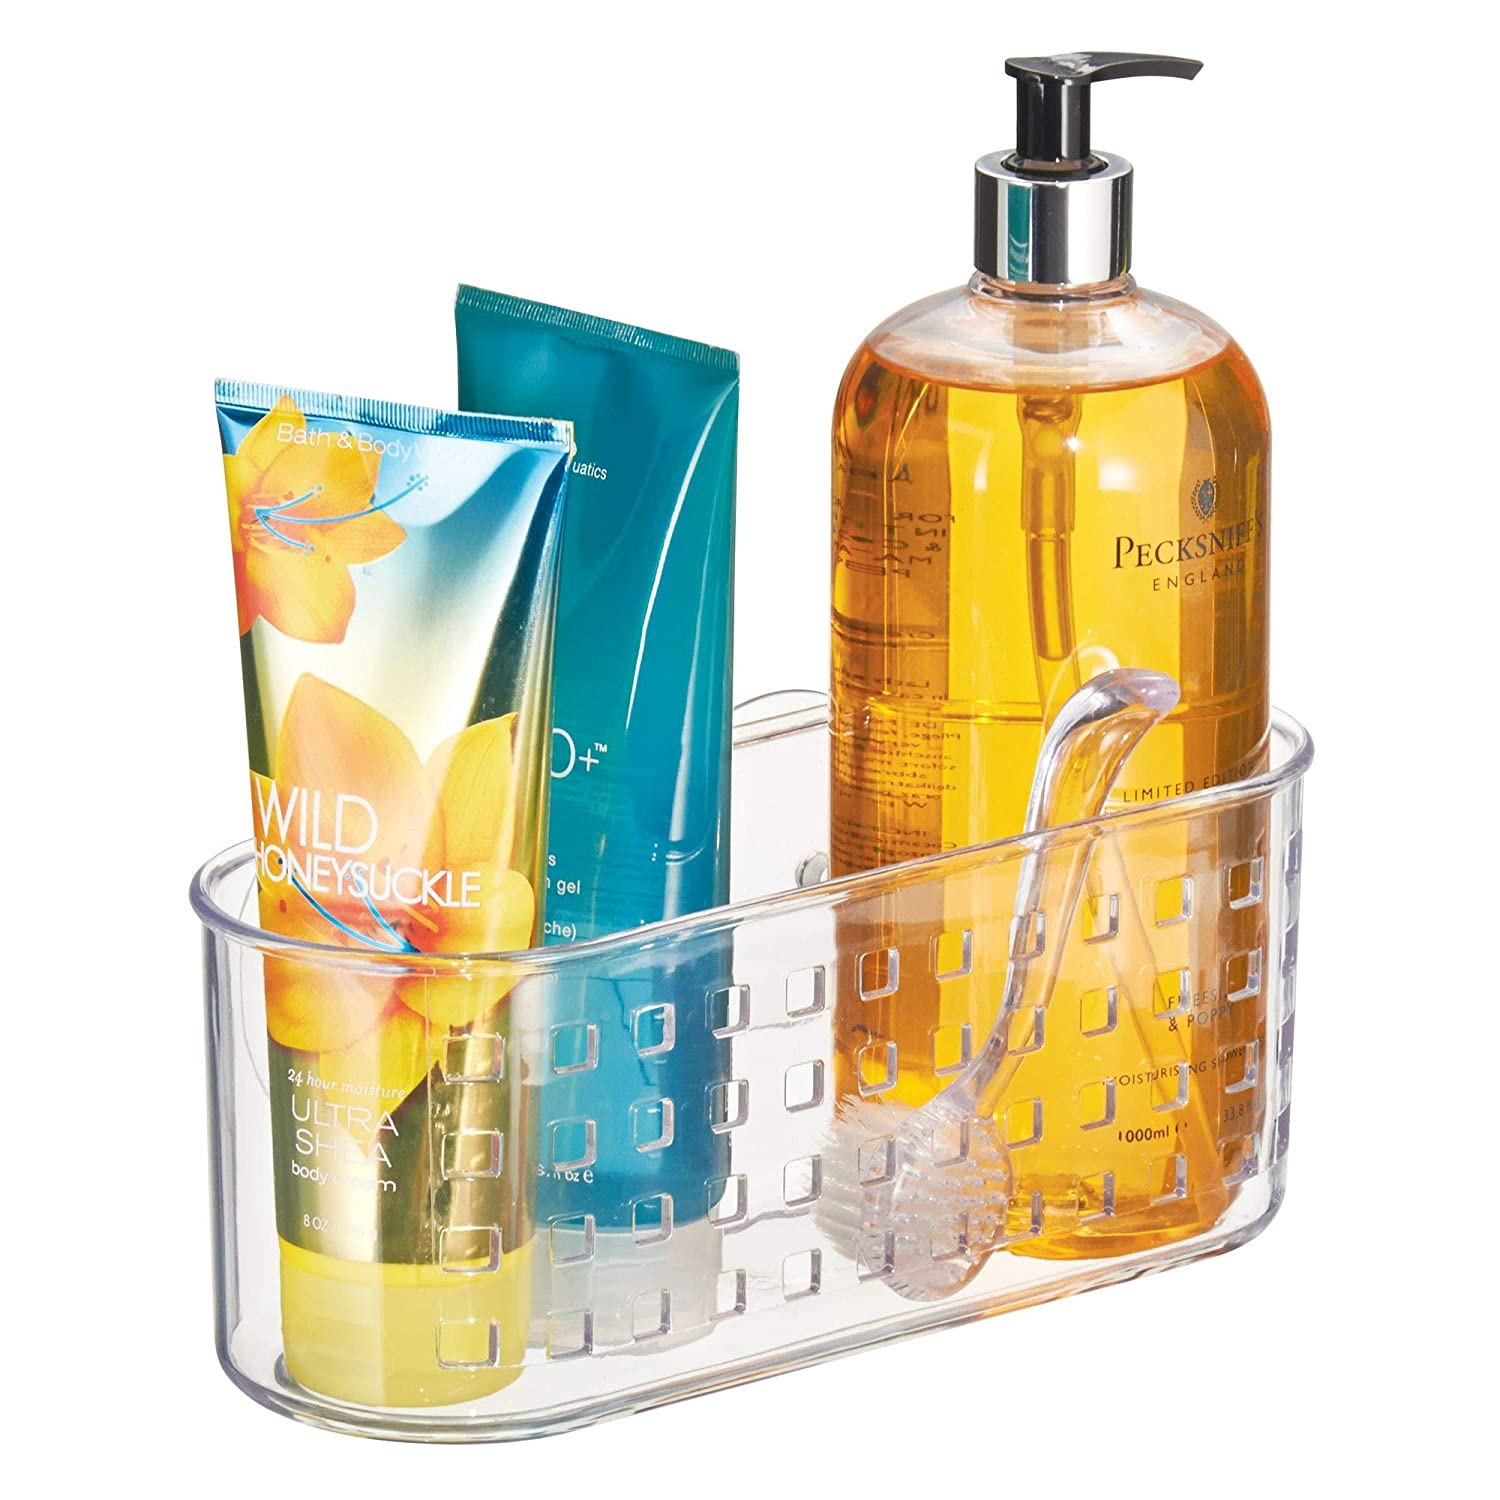 Amazon.com: InterDesign 41600 Suction Bathroom Caddy - Shower ...